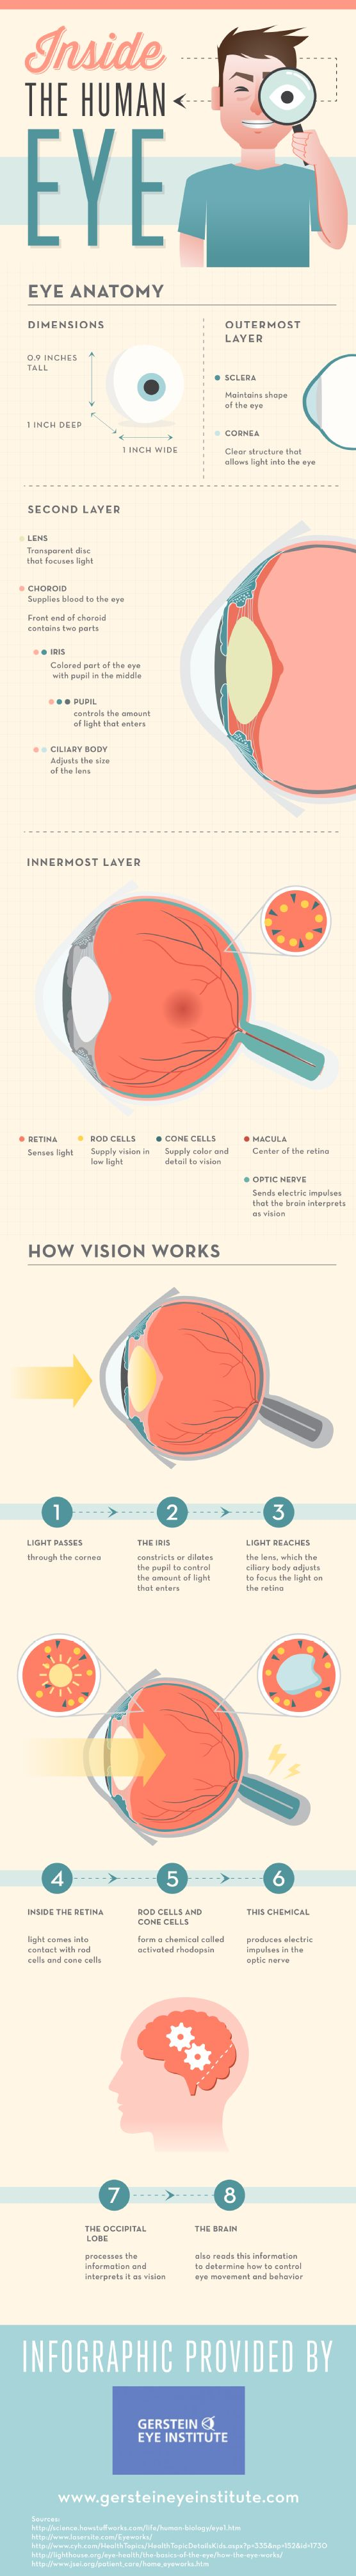 [ Infographic ] Inside The Human Eye - Gerstein Eye Institute